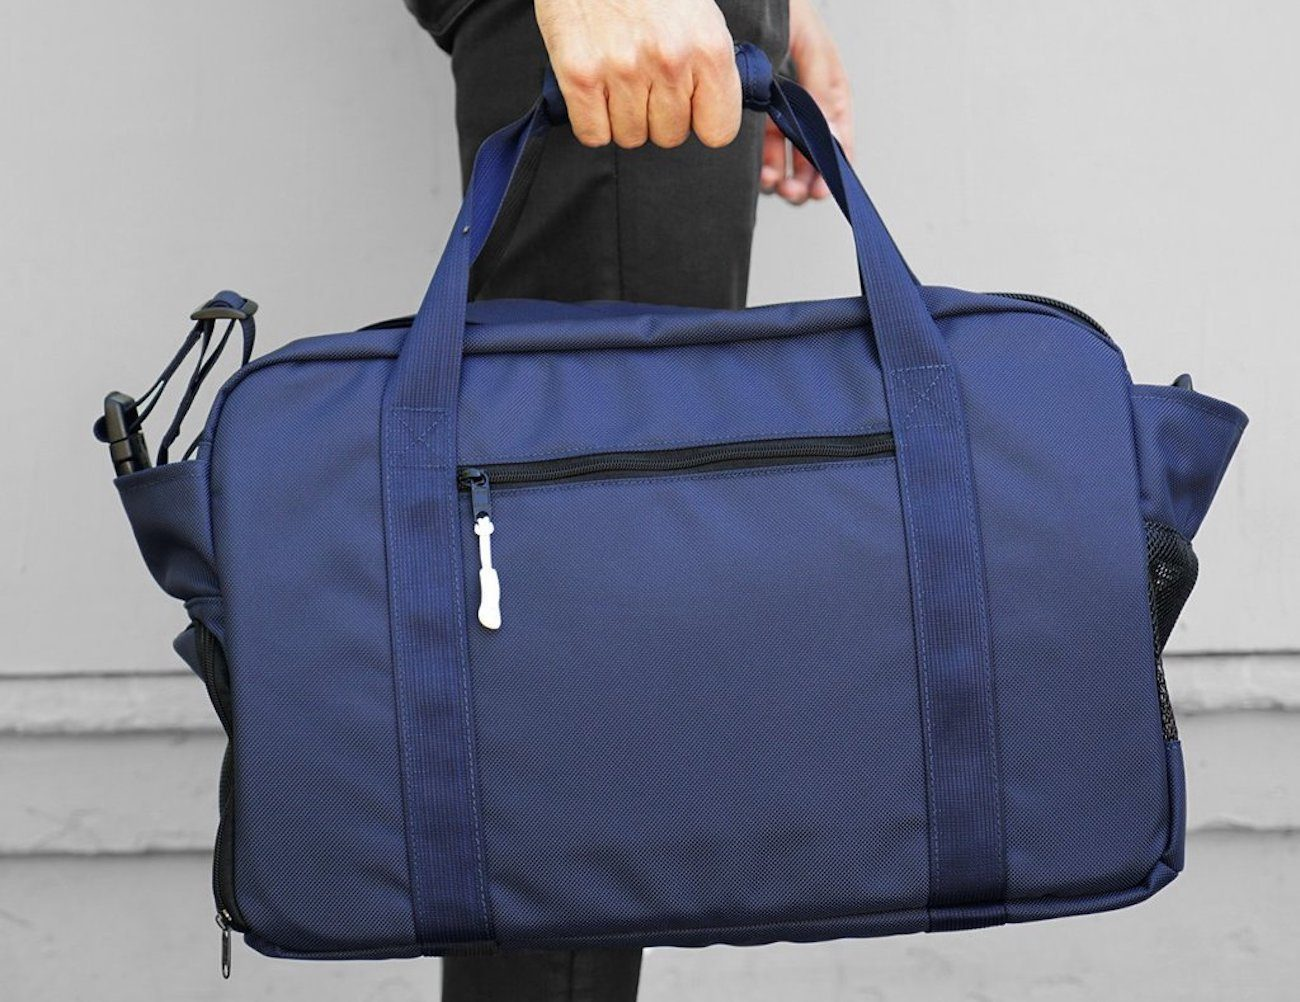 DSPTCH+Durable+Gym%2FWork+Bag